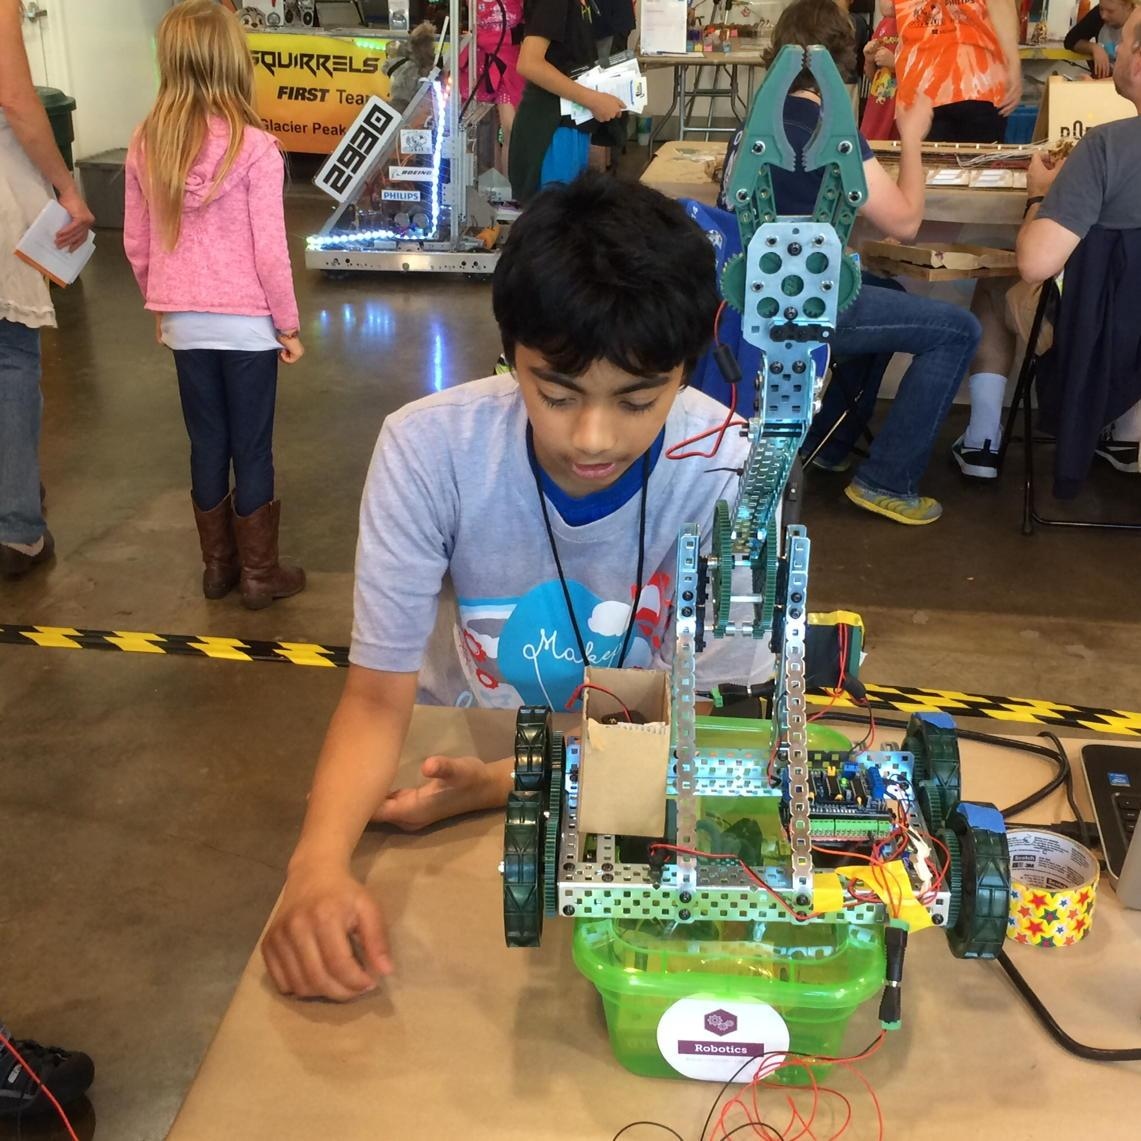 11 y/o kid built a mind control interface for robot. Luckily it's not subversive like a clock. Seattle maker fair. http://t.co/vpQDD4uedV